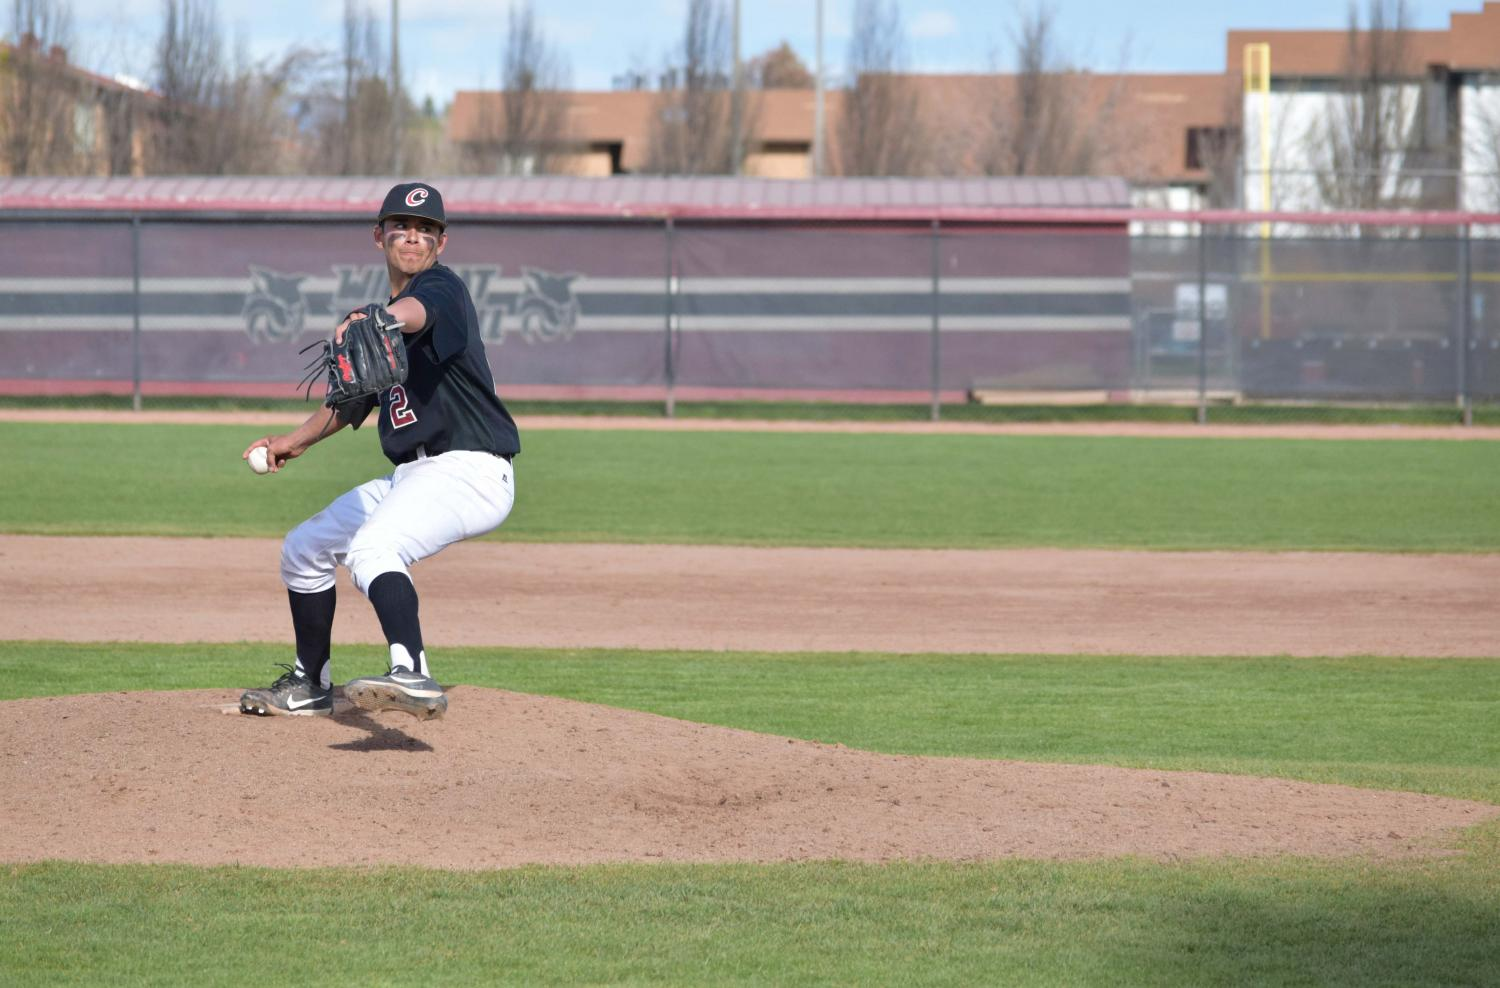 Junior Chris Dalto pitching during a four-game series against Saint Martin's University. Dalto has appeared in 43 out of 46 games for the Wildcats.